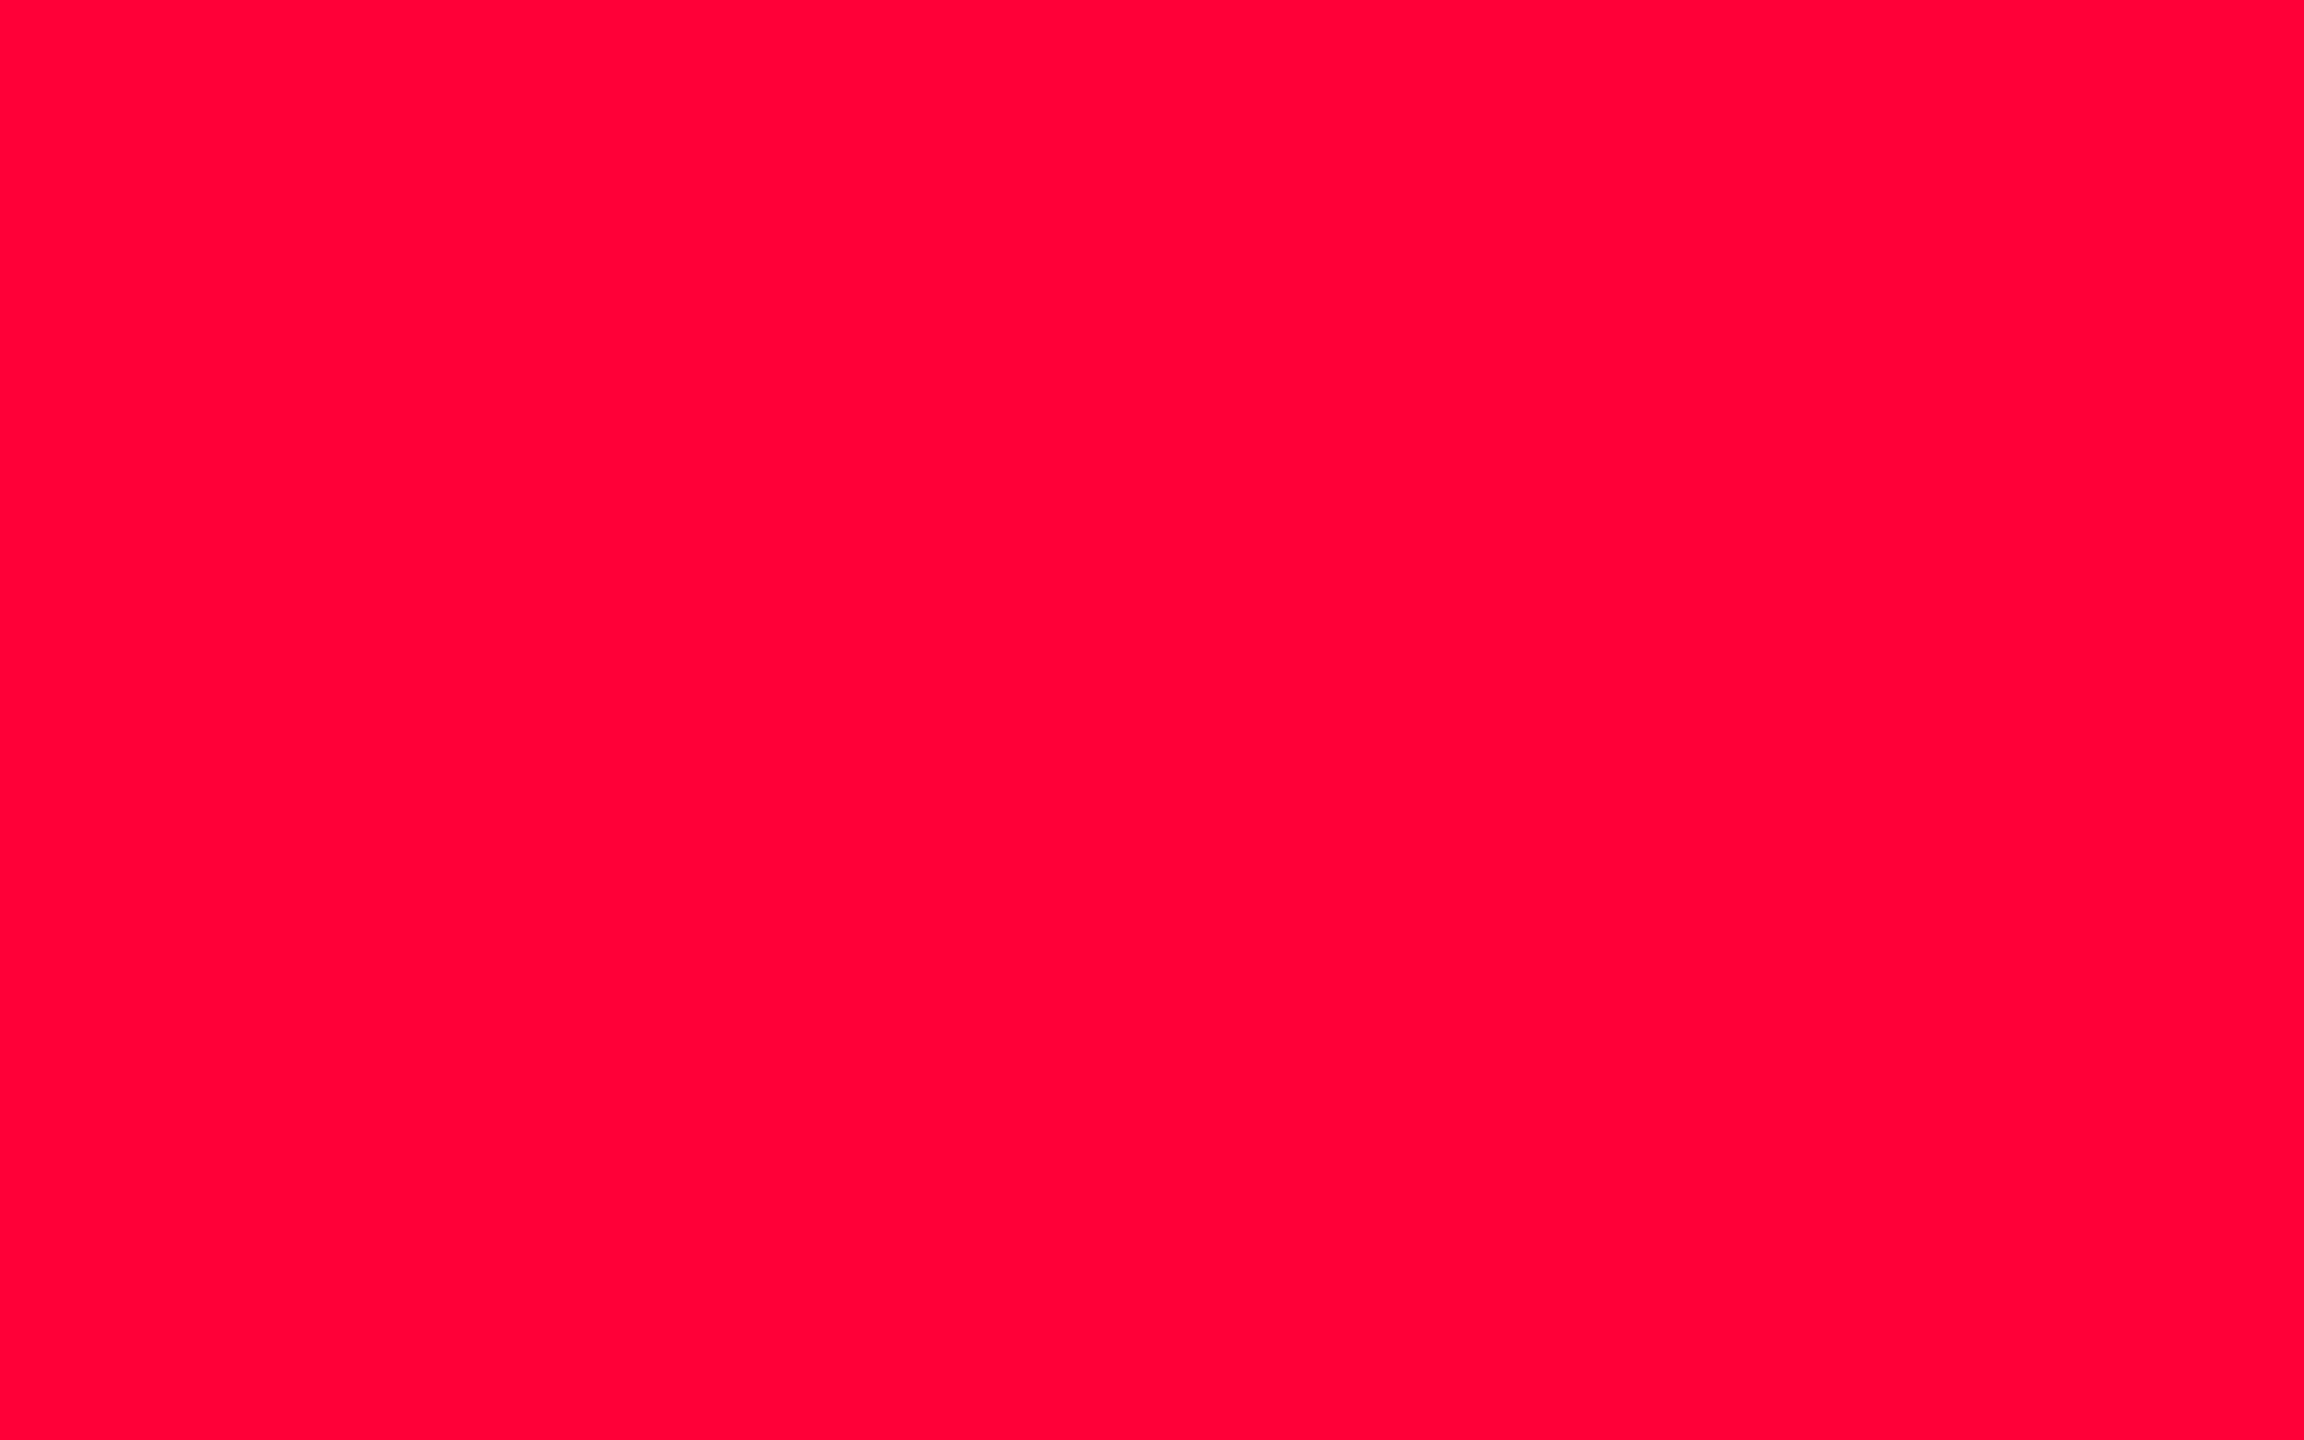 2304x1440 Carmine Red Solid Color Background